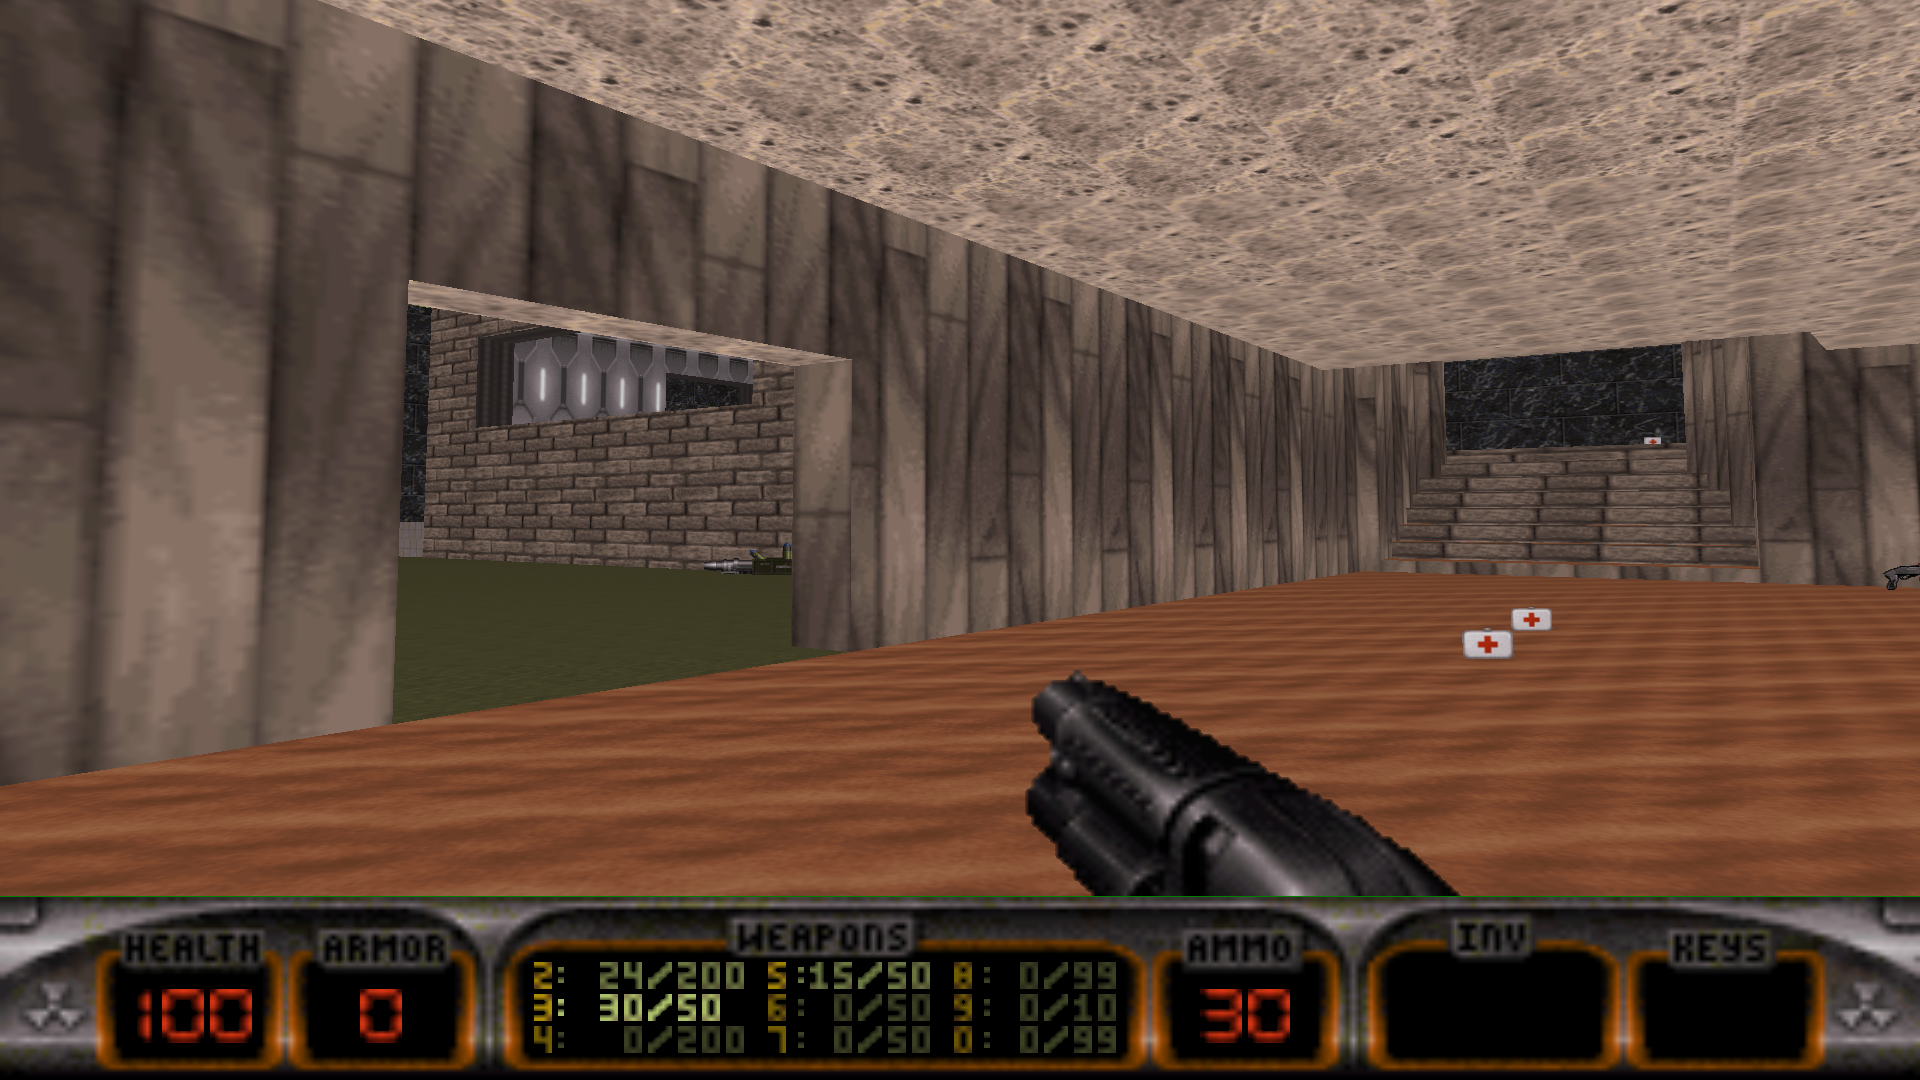 IOdanzg2 Duke Nukem 3D Map